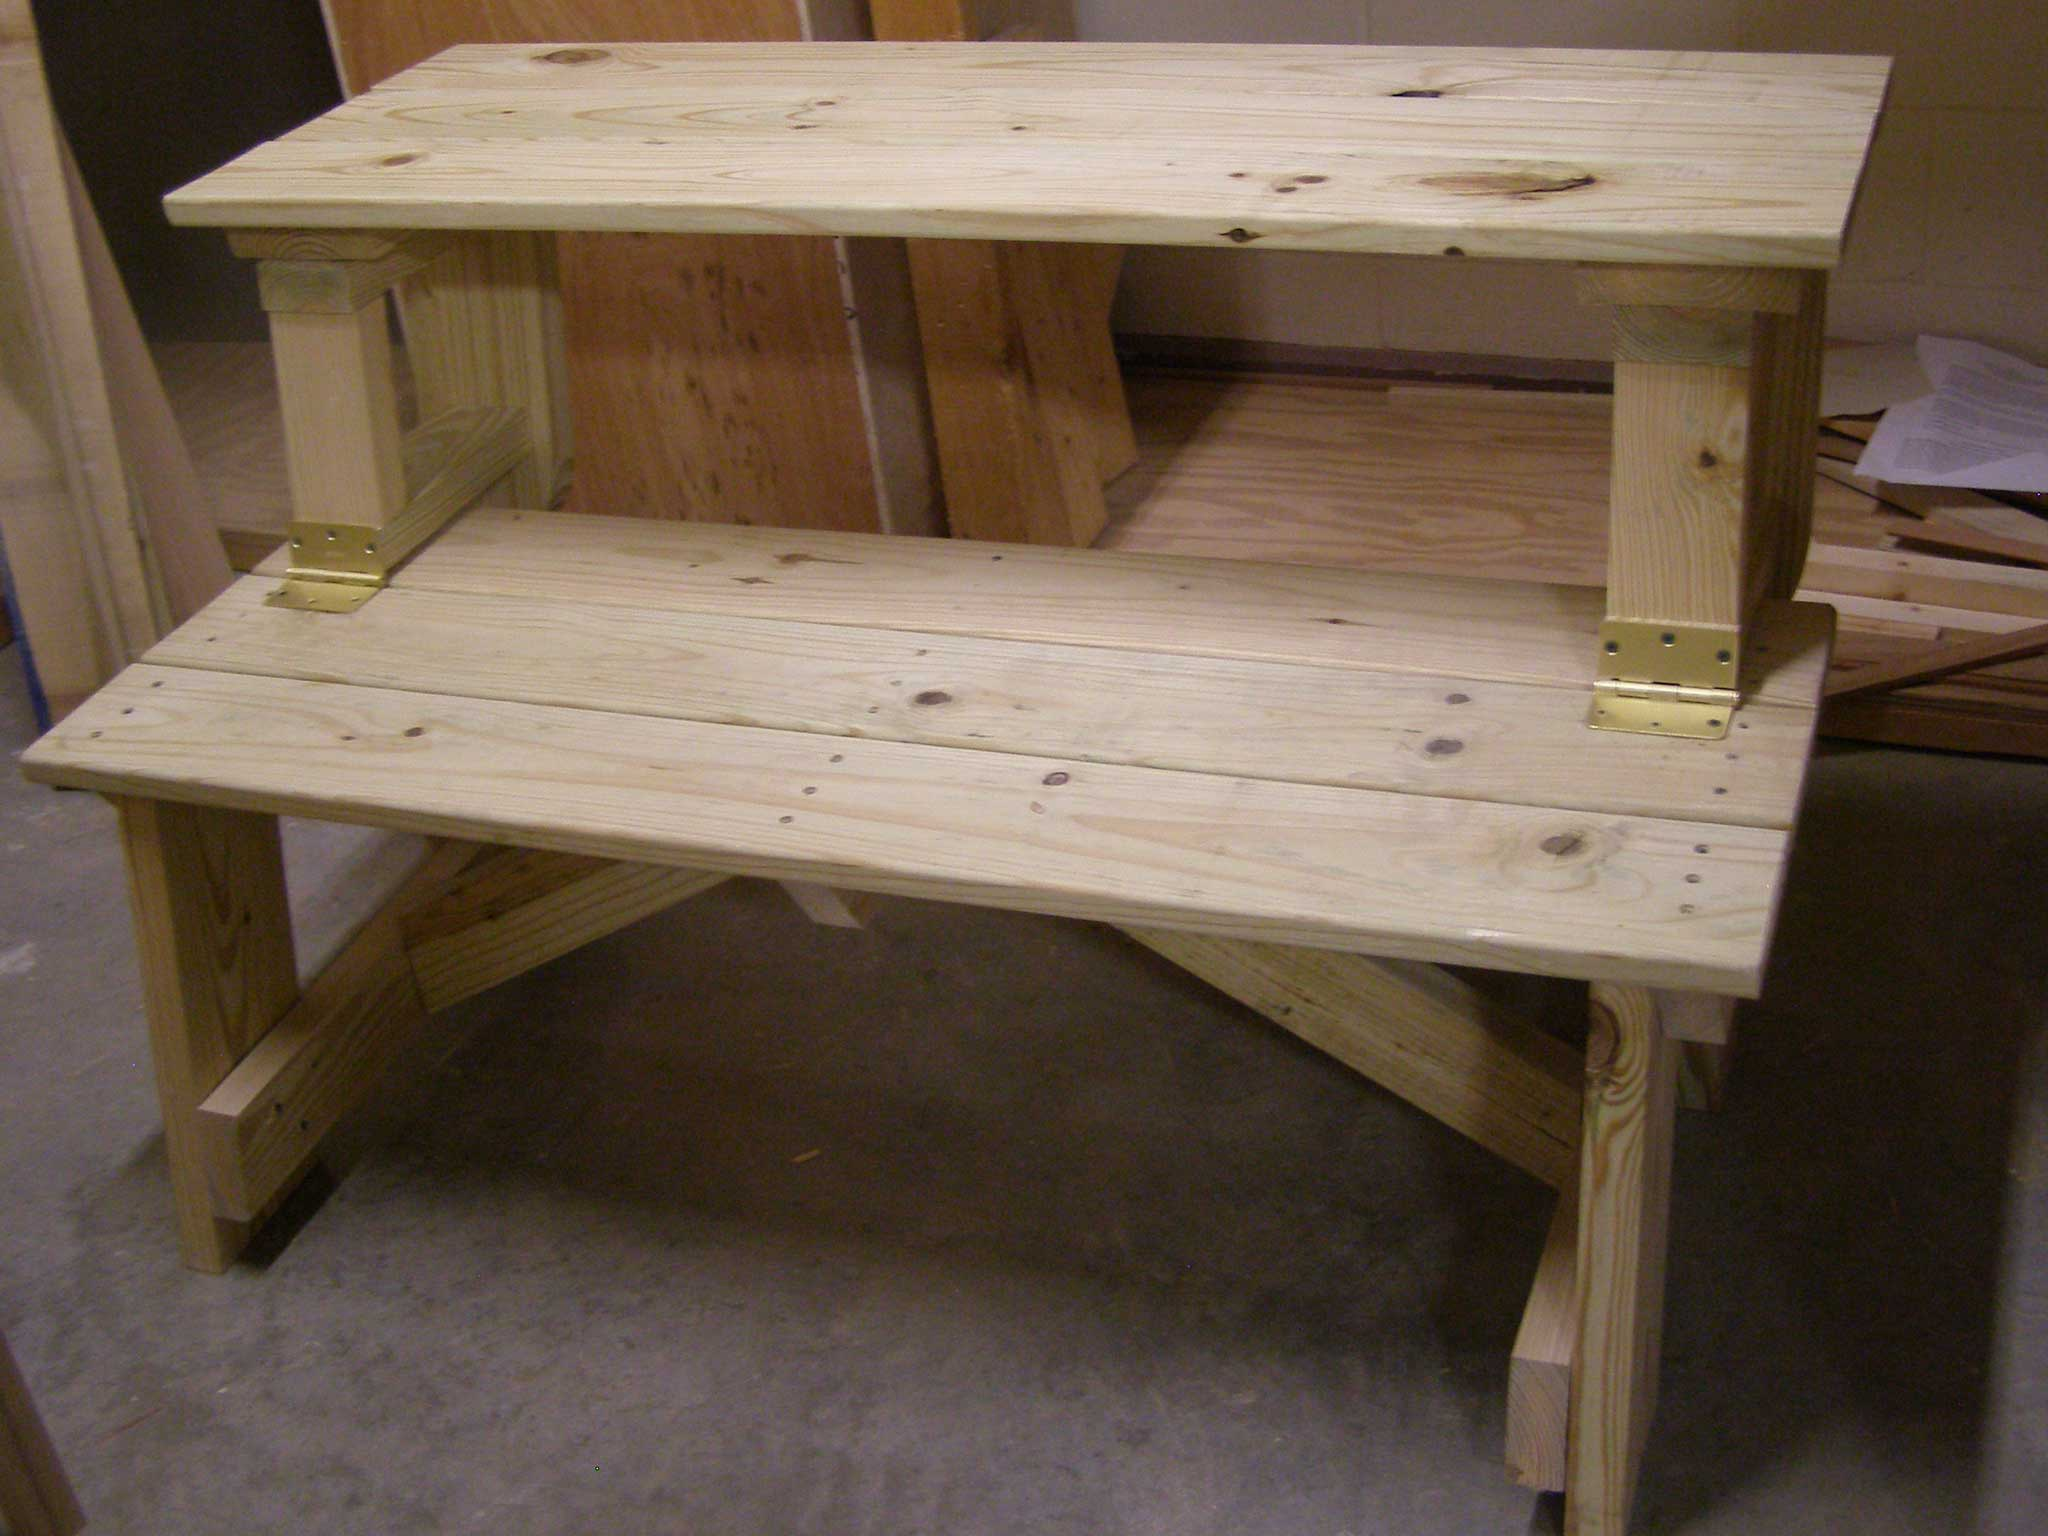 hinged table bench